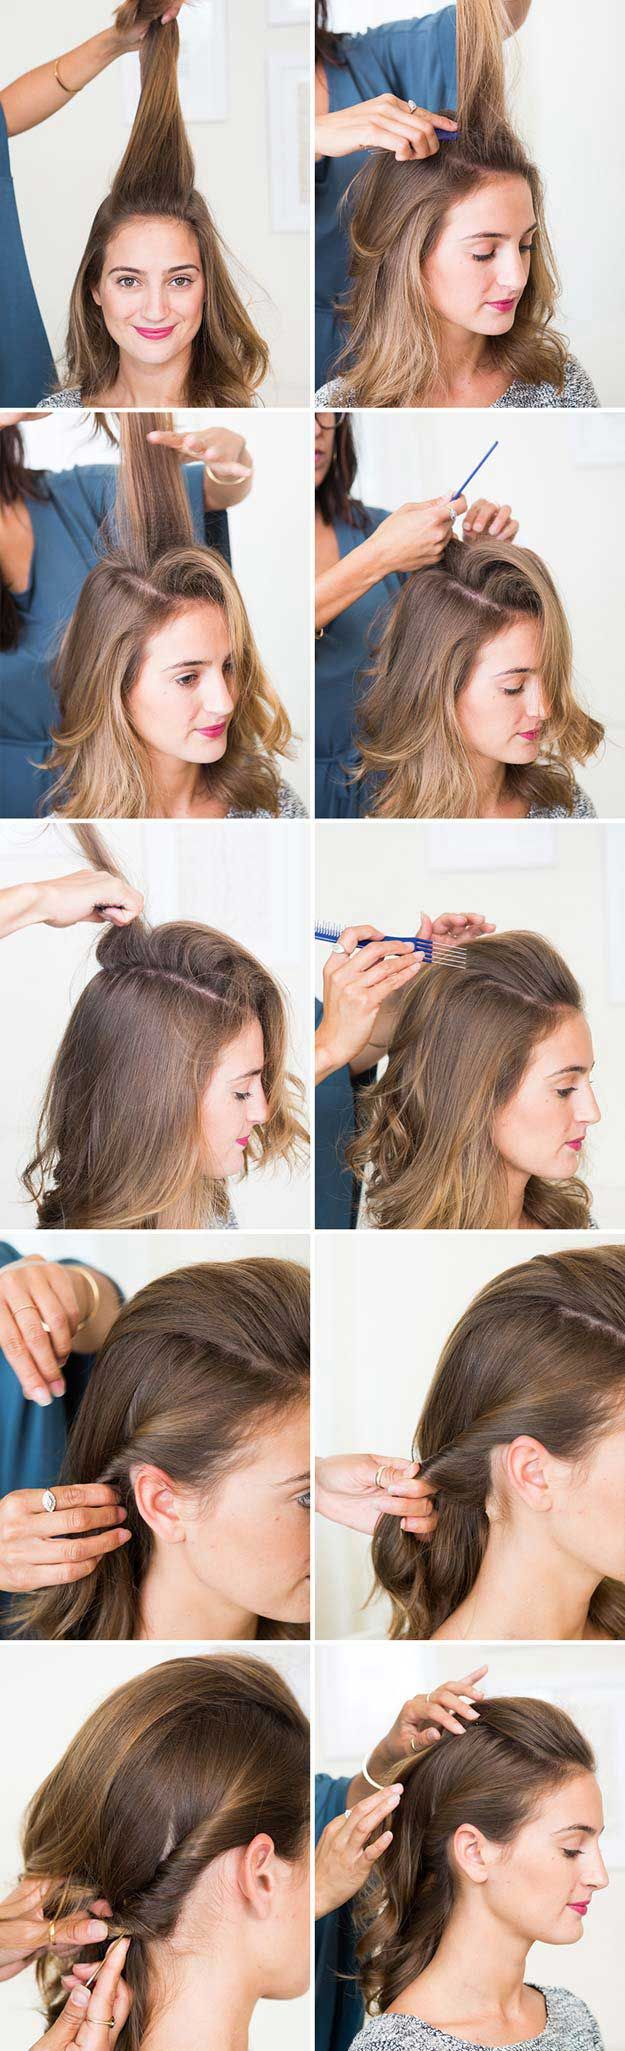 Amazing Half Up-Half Down Hairstyles For Long Hair - The Half-Up PompaDour - Eas...